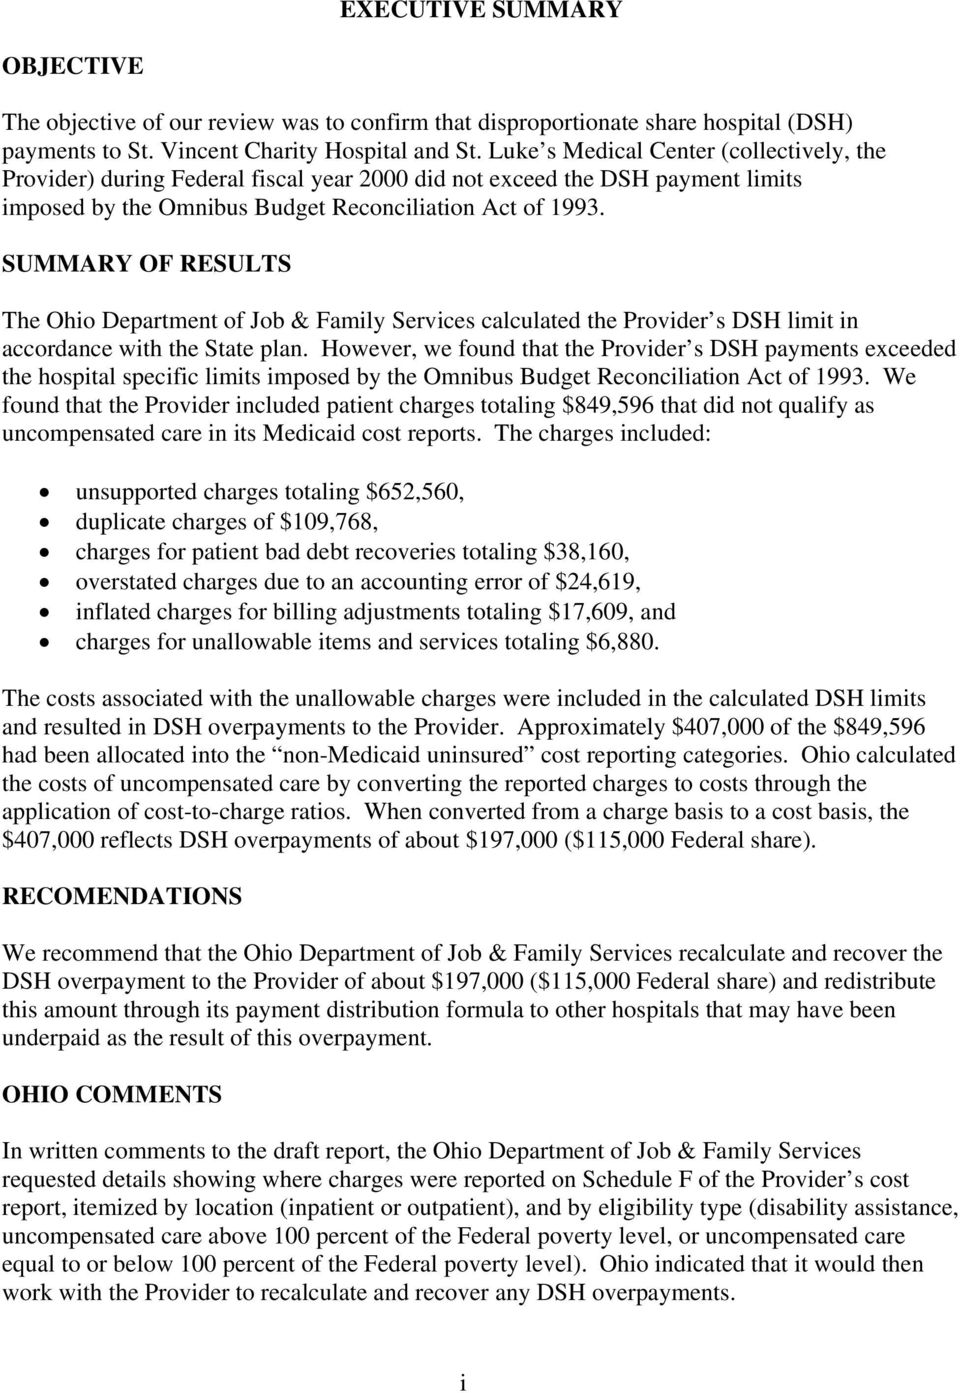 SUMMARY OF RESULTS The Ohio Department of Job & Family Services calculated the Provider s DSH limit in accordance with the State plan.